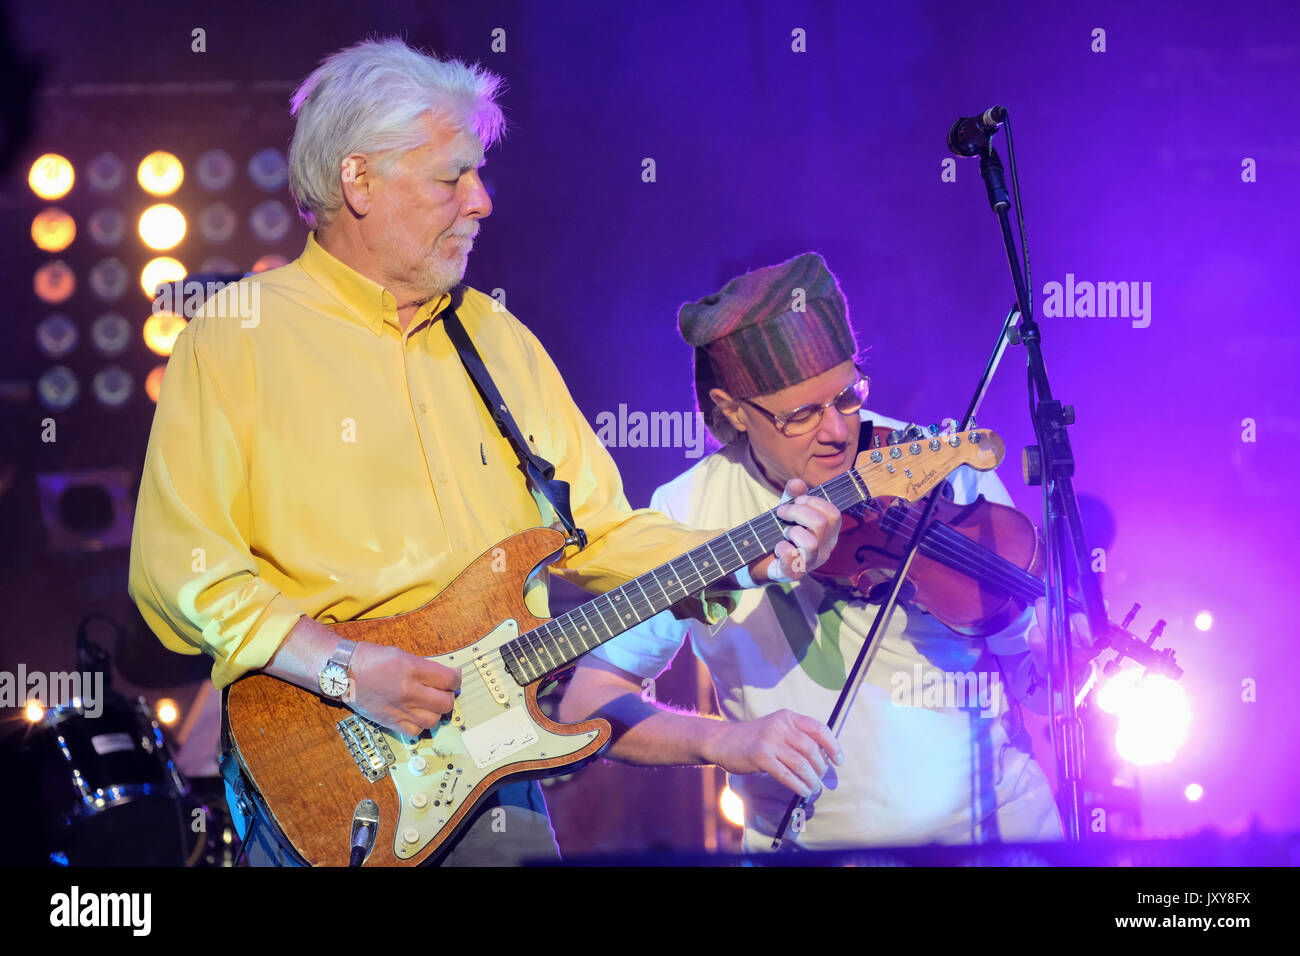 Simon Nicol and Ric Sanders of Fairport Convention performing at Fairport's Cropredy Convention, Banbury, Oxfordshire, England, August 12, 2017 - Stock Image